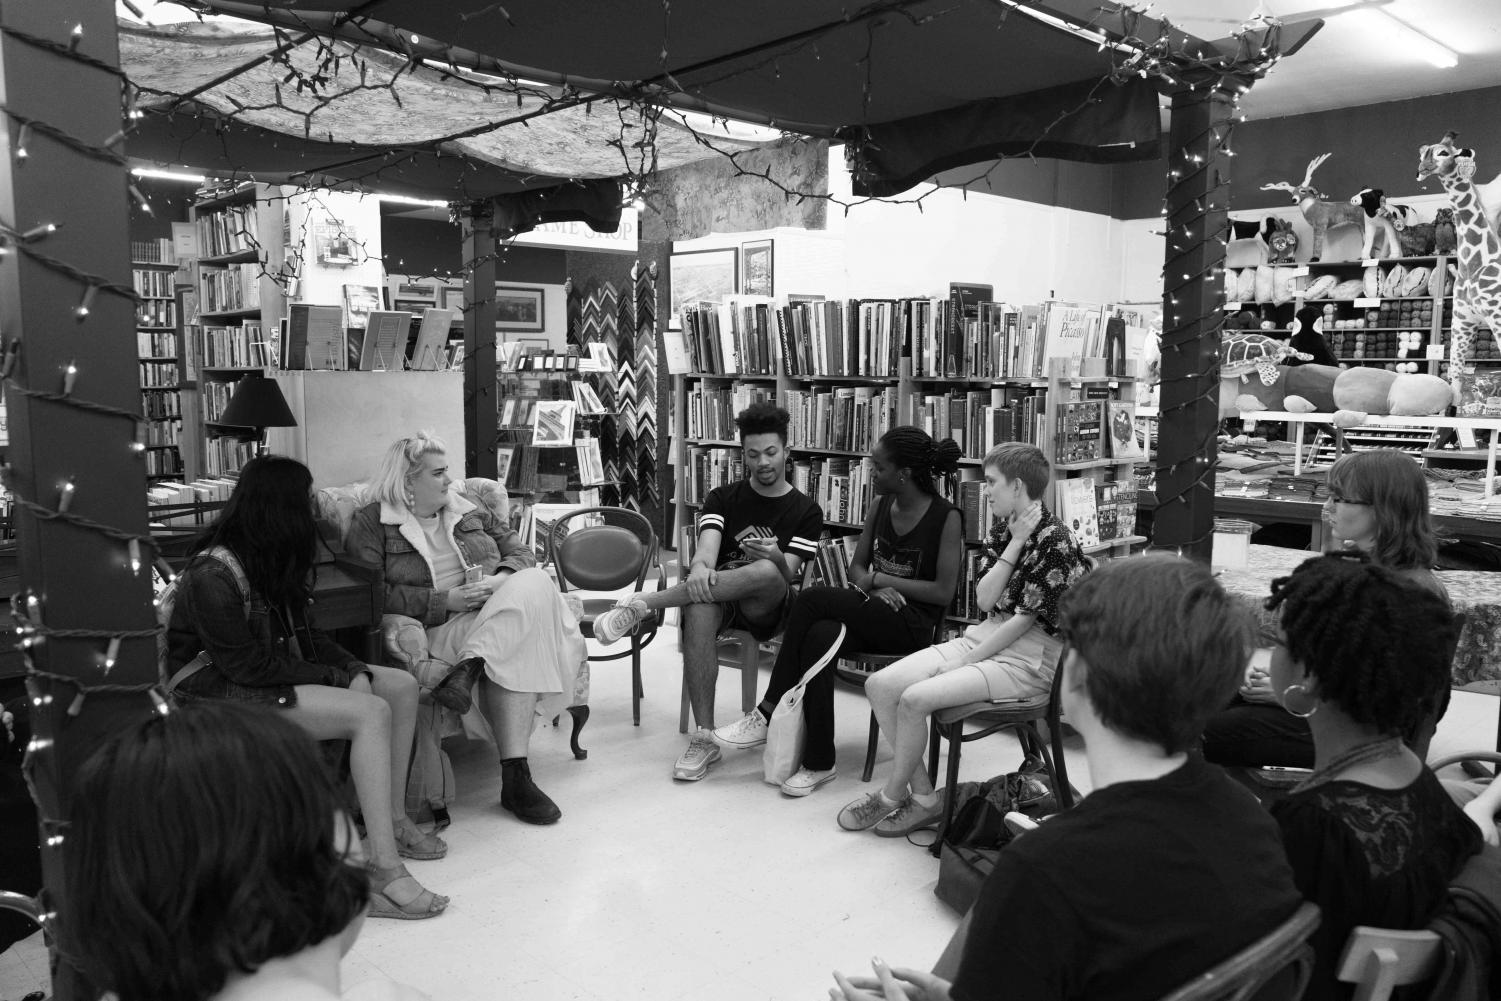 OSlam team members connect the College and town through poetry in the cozy, intimate mid-store gazebo in Ben Franklin Monday. The setting allowed performers and audience members to sit side-by-side in a circle. The poetry reading celebrated the end of National Poetry Month, and also featured some poetry from non-OSlam members.